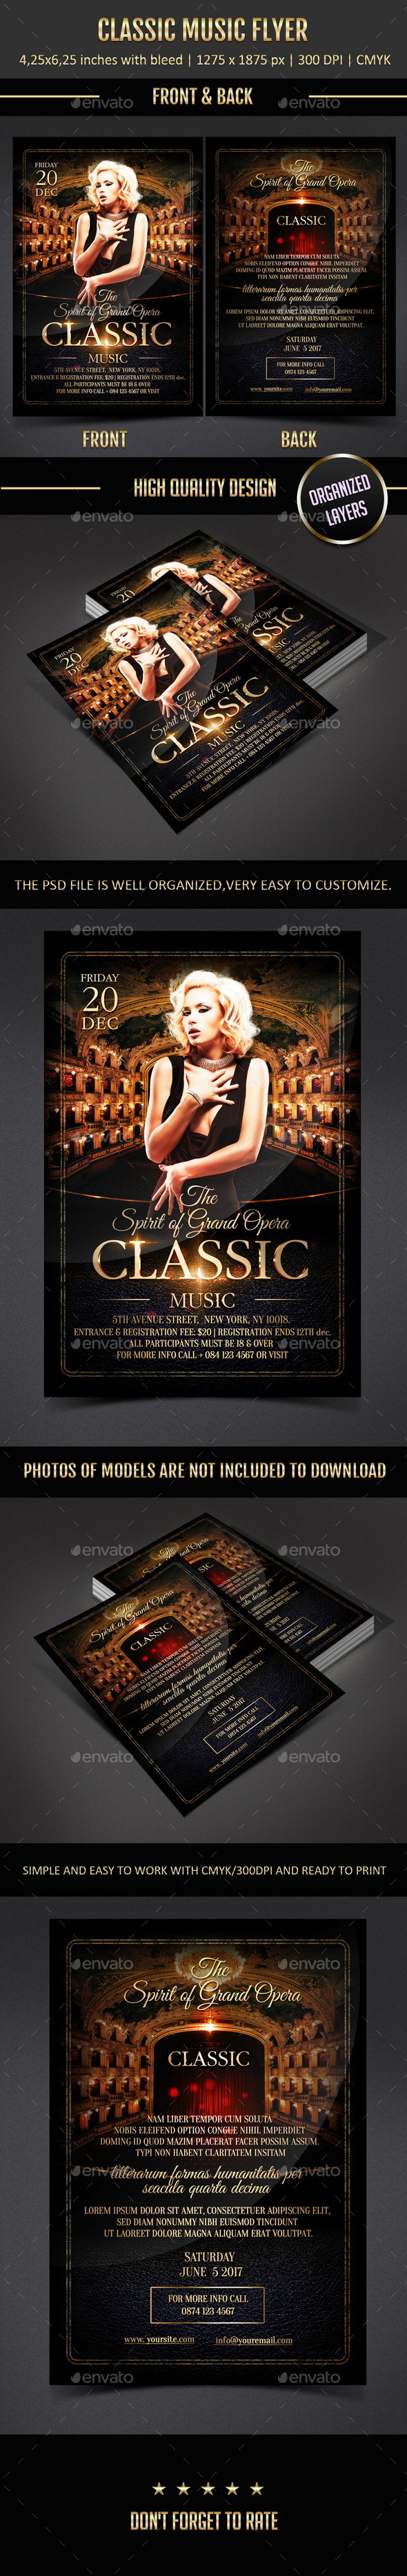 GraphicRiver Classic Music Flyer 11261224